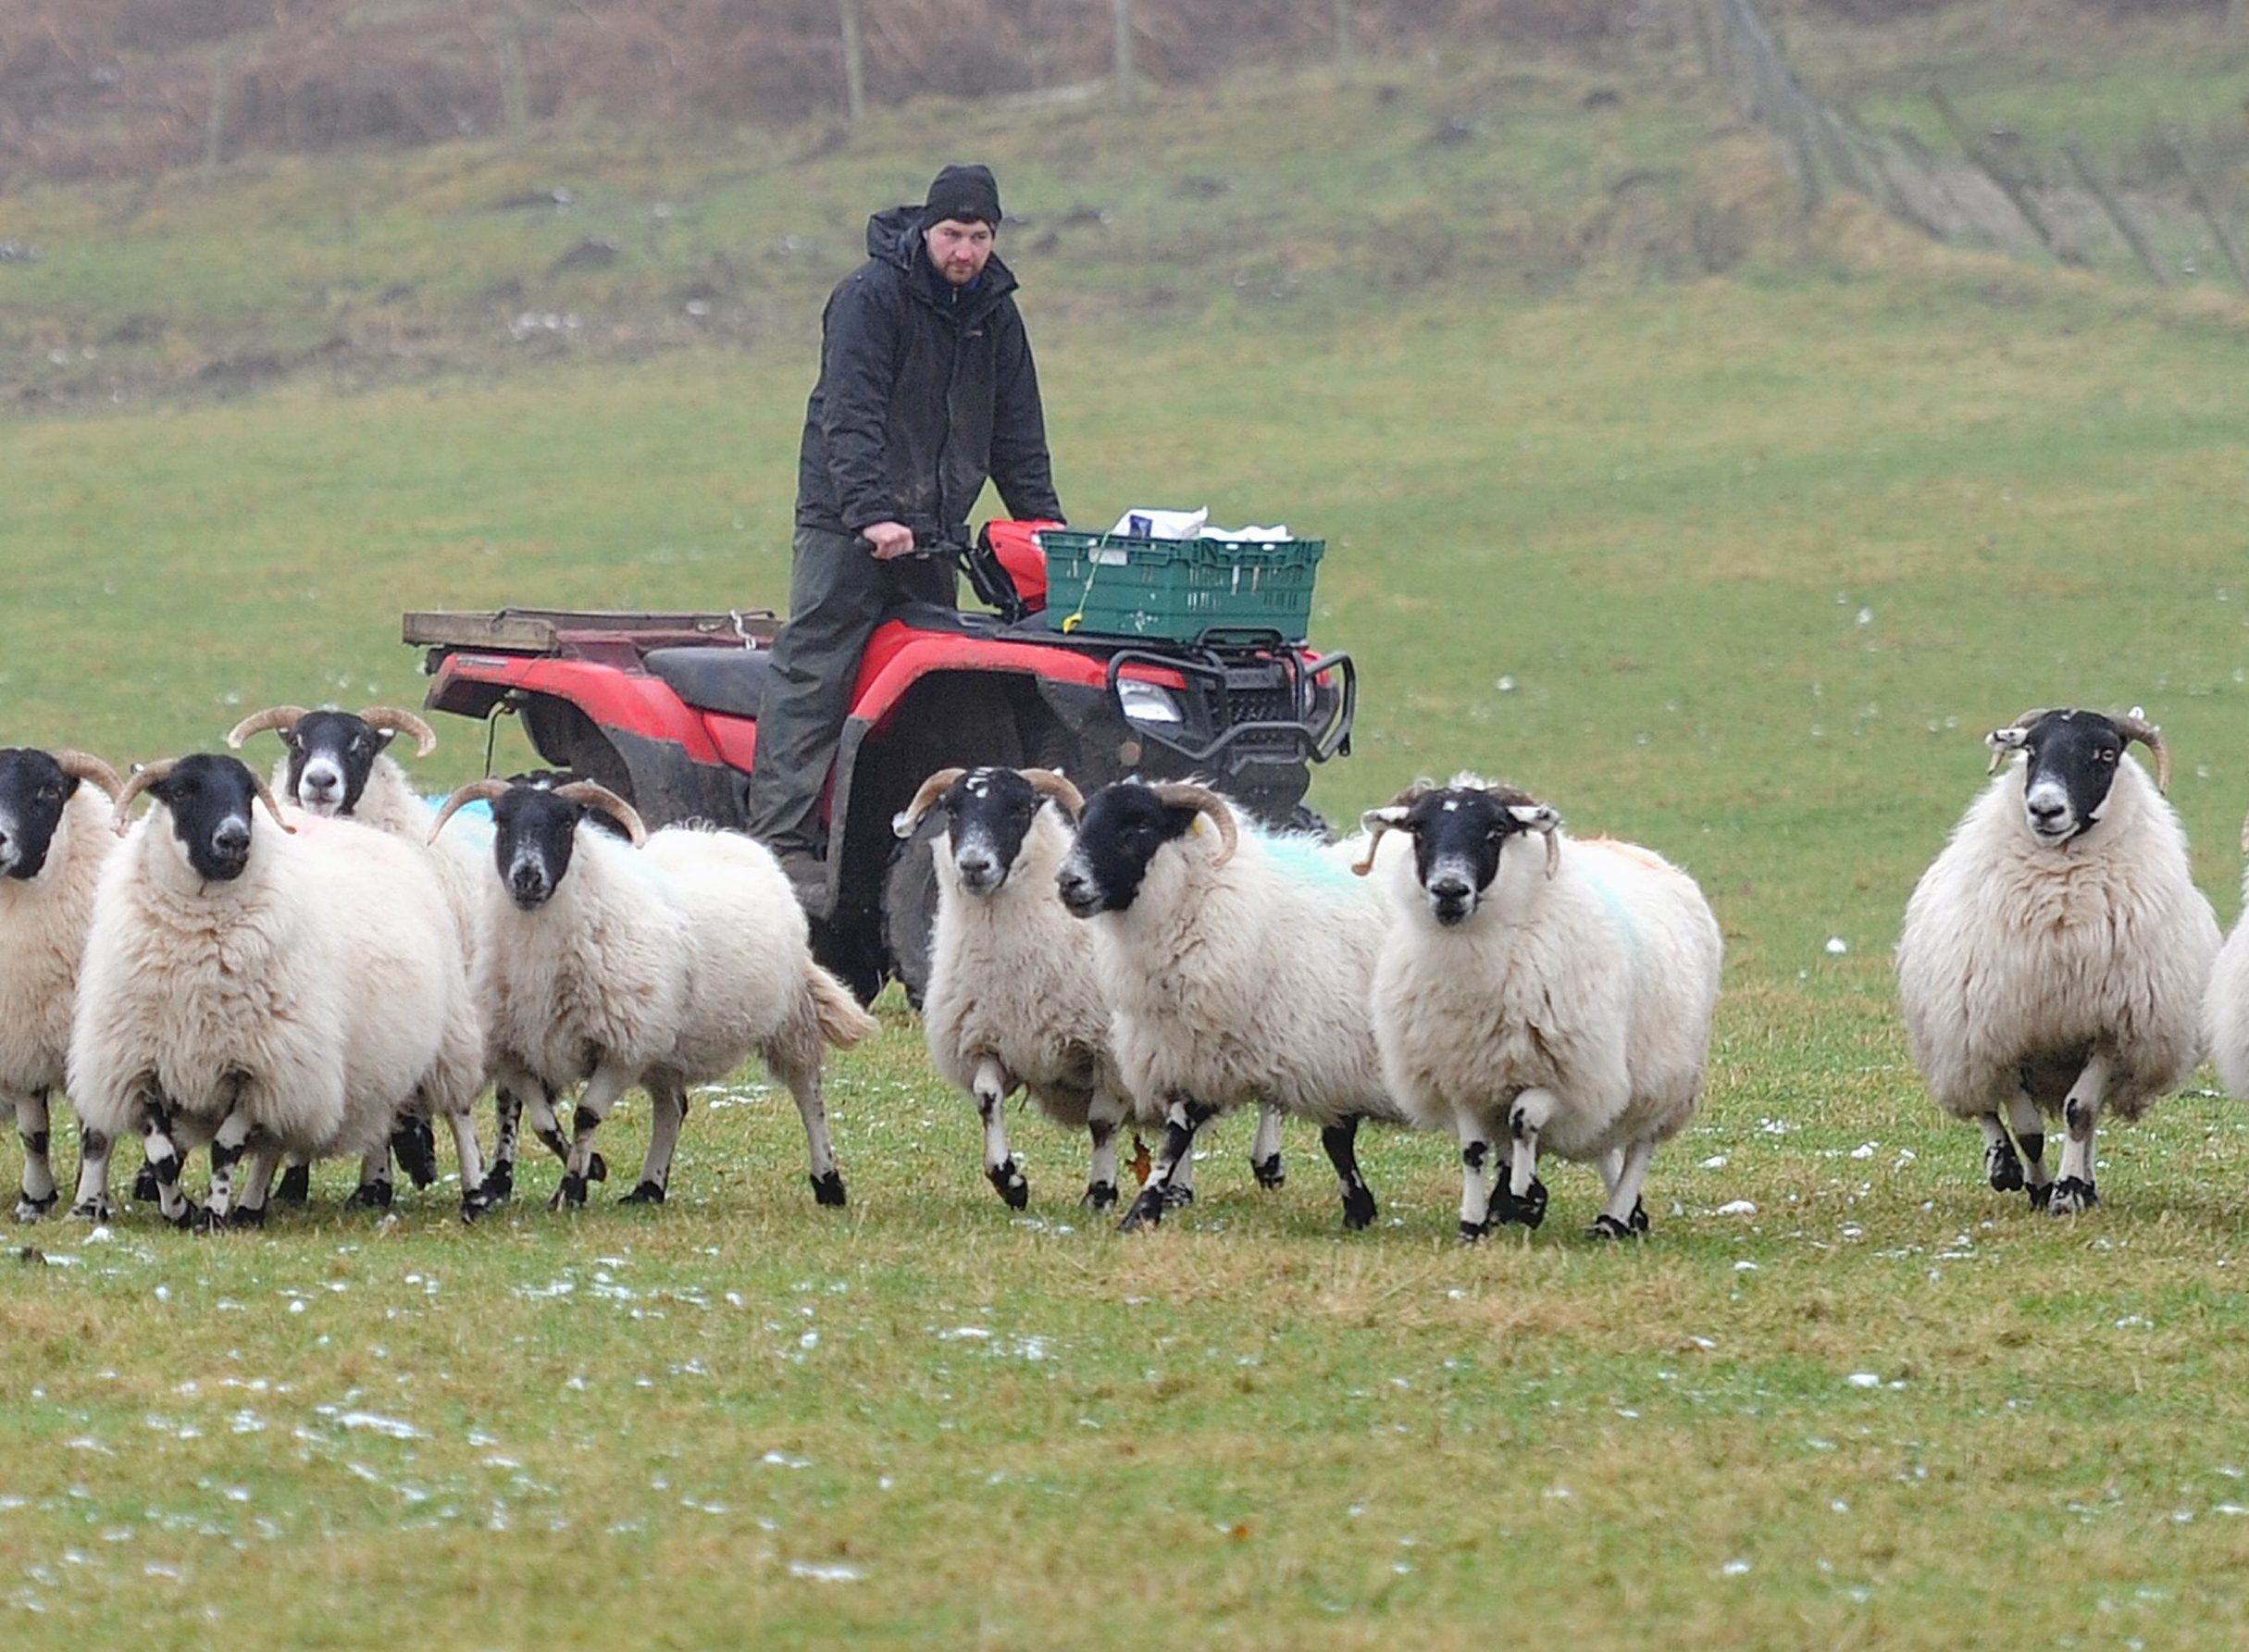 Muthill sheep farmer Tom Paterson with a flock in a field in which some were attacked.